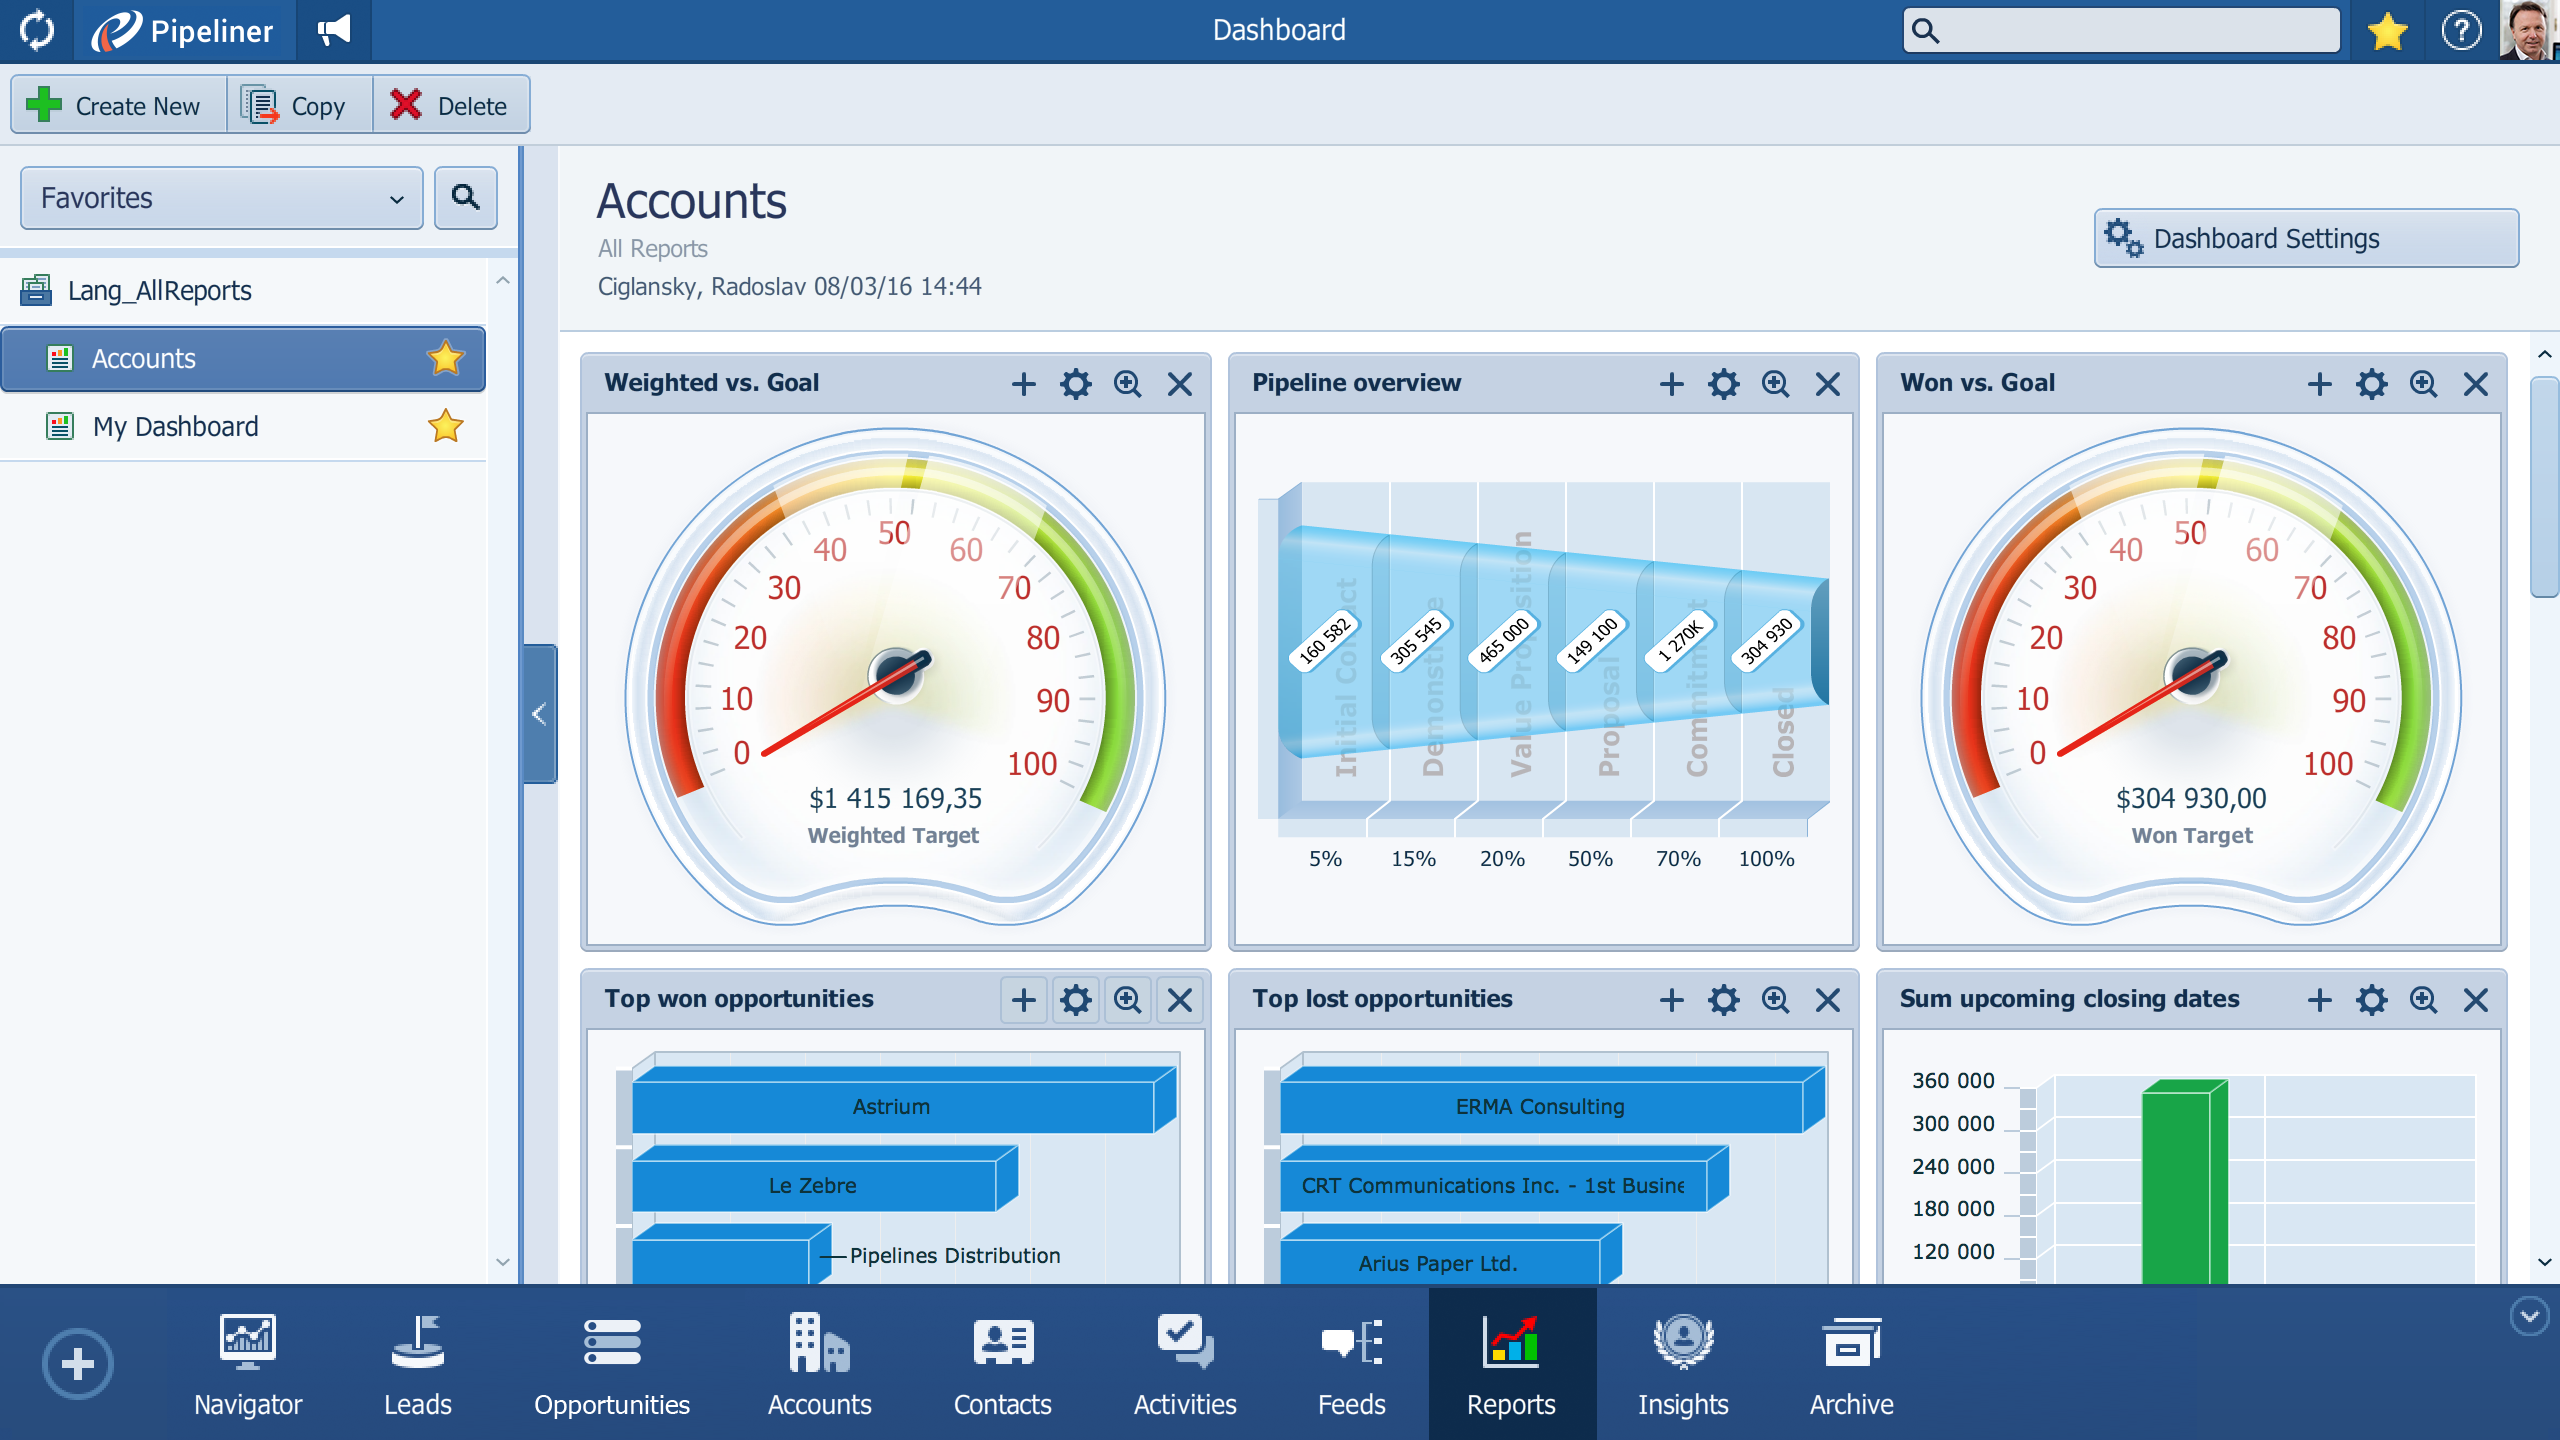 Pipeliner CRM's reporting dashboard gives you a snapshot of your goals, pipeline velocity, opportunities, etc